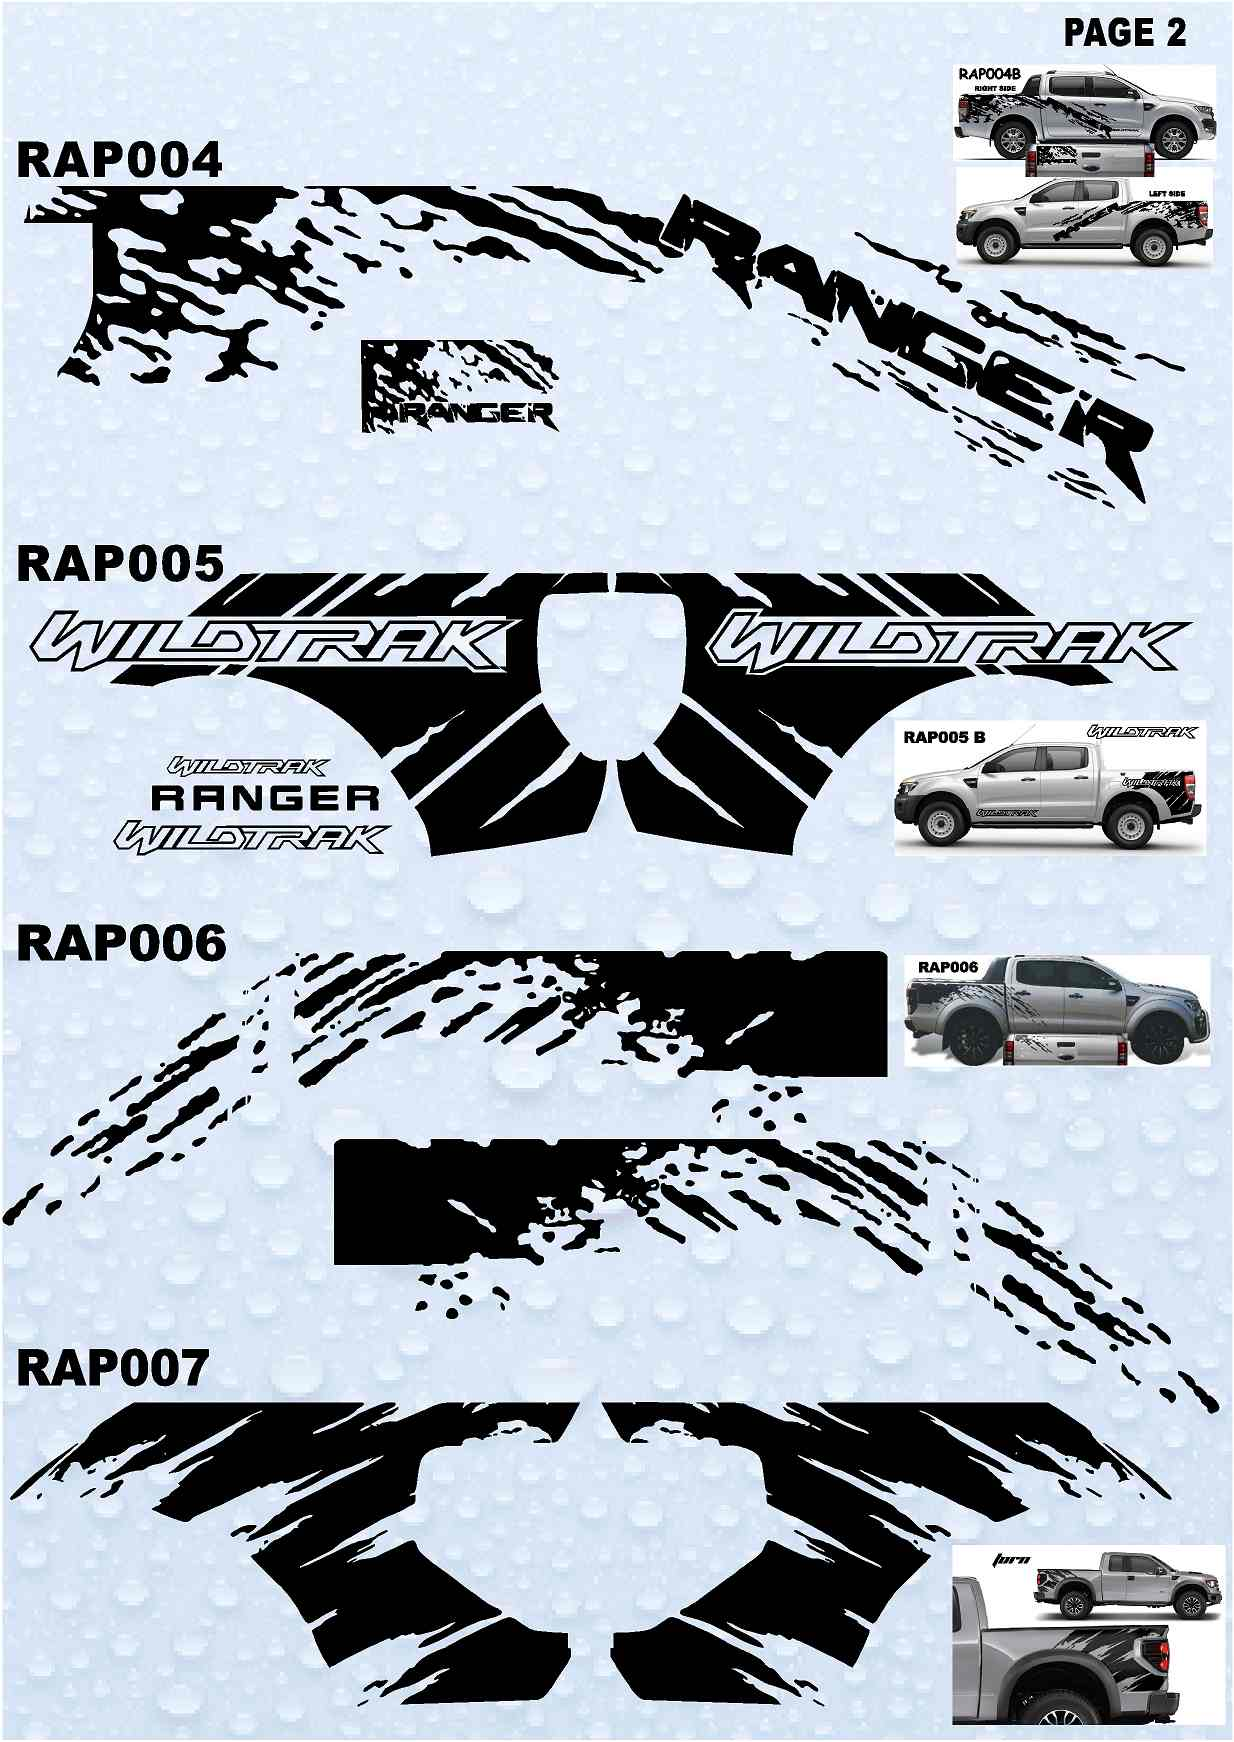 Raptor Ranger Stickers 4 X 4 Stickers Collection 2